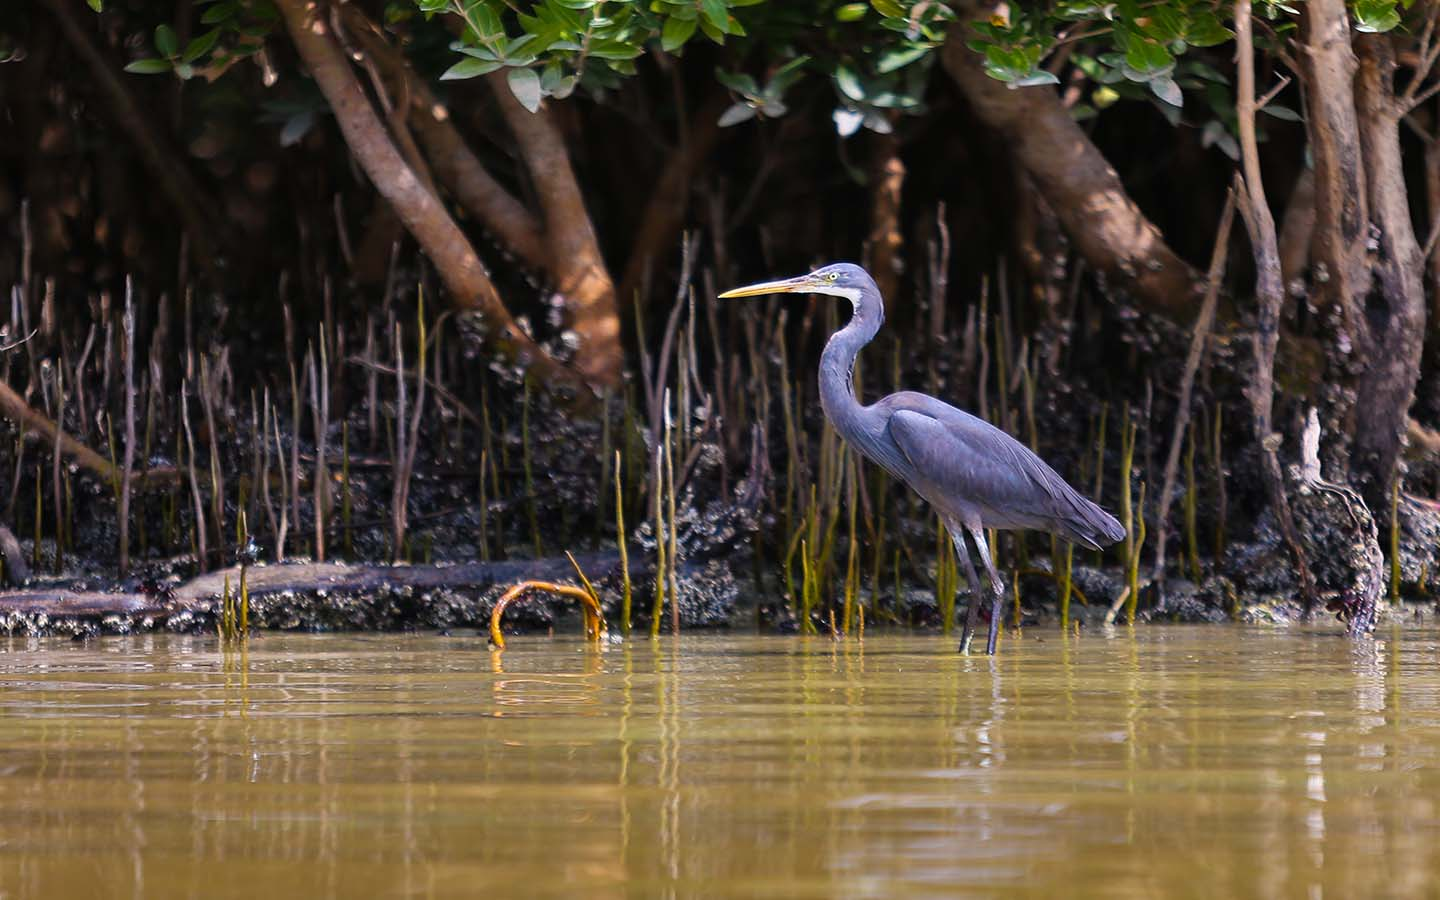 A bird standing in shallow water at Eastern Mangrove Abu Dhabi